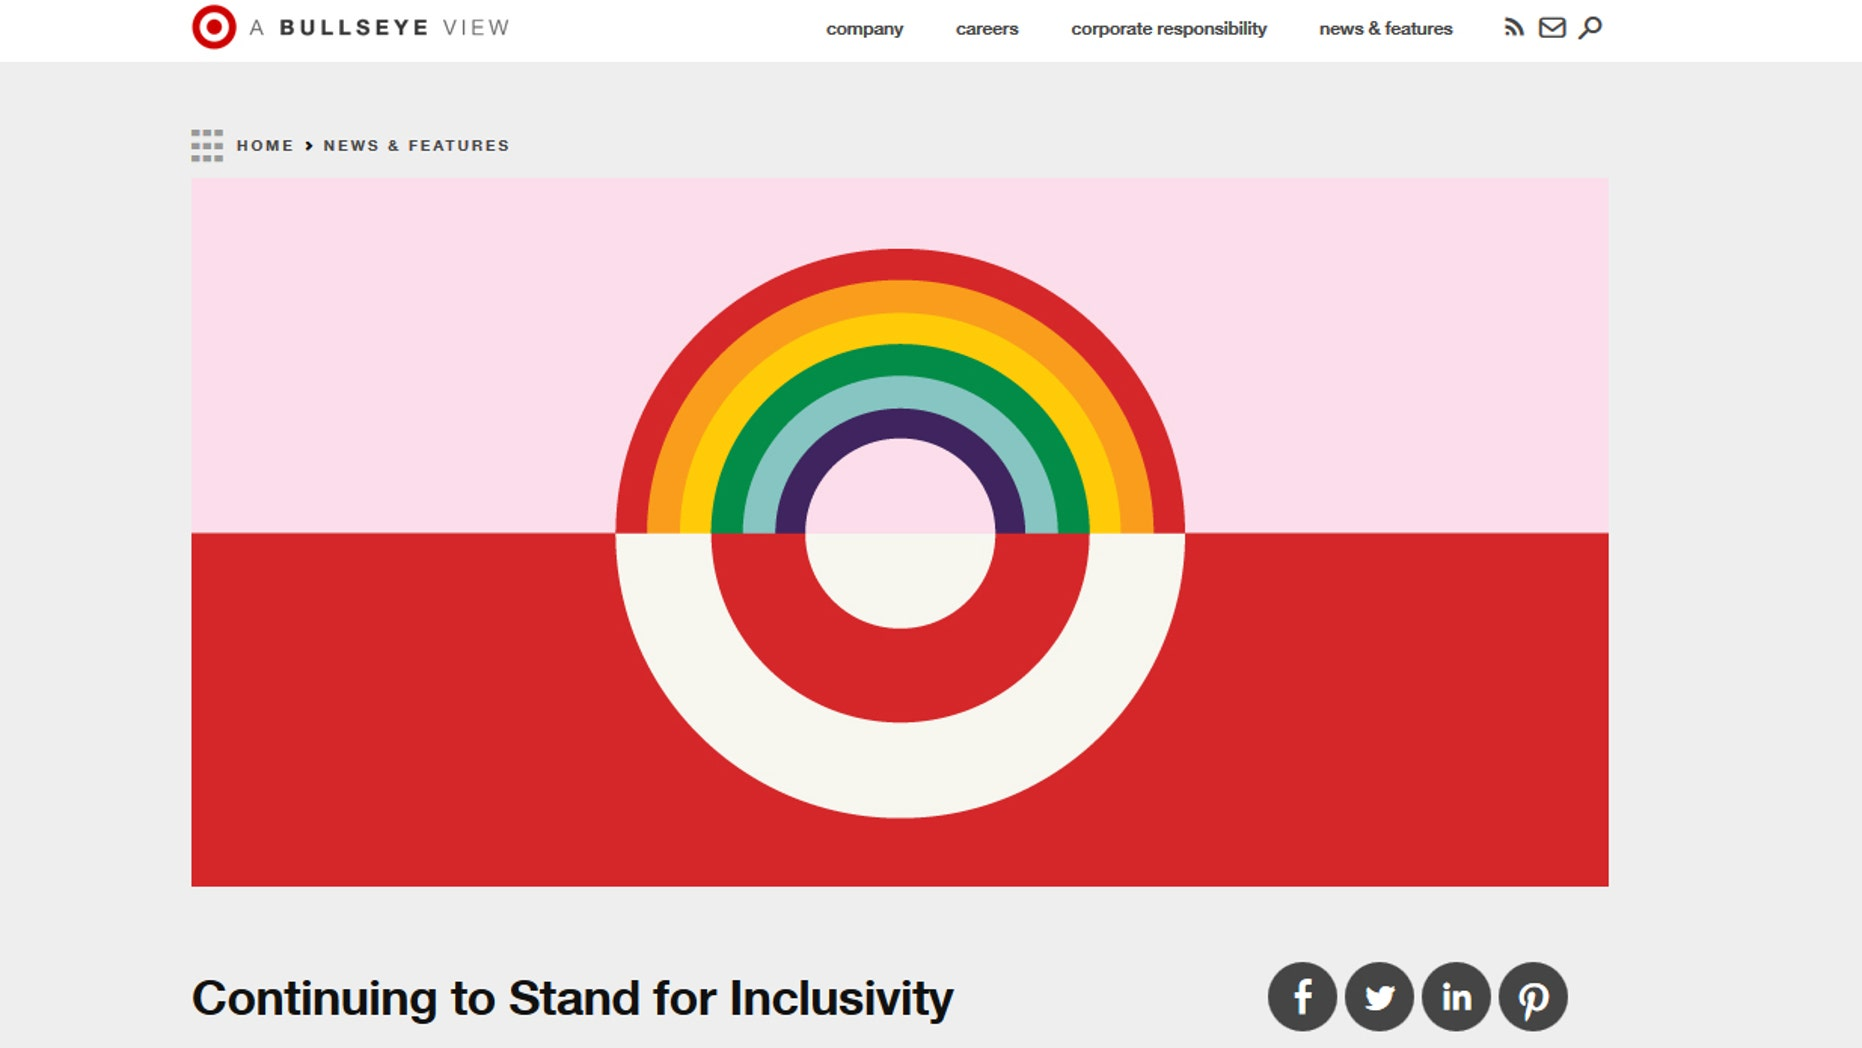 Target said its policy is not new, but is a restatement of corporate policy.